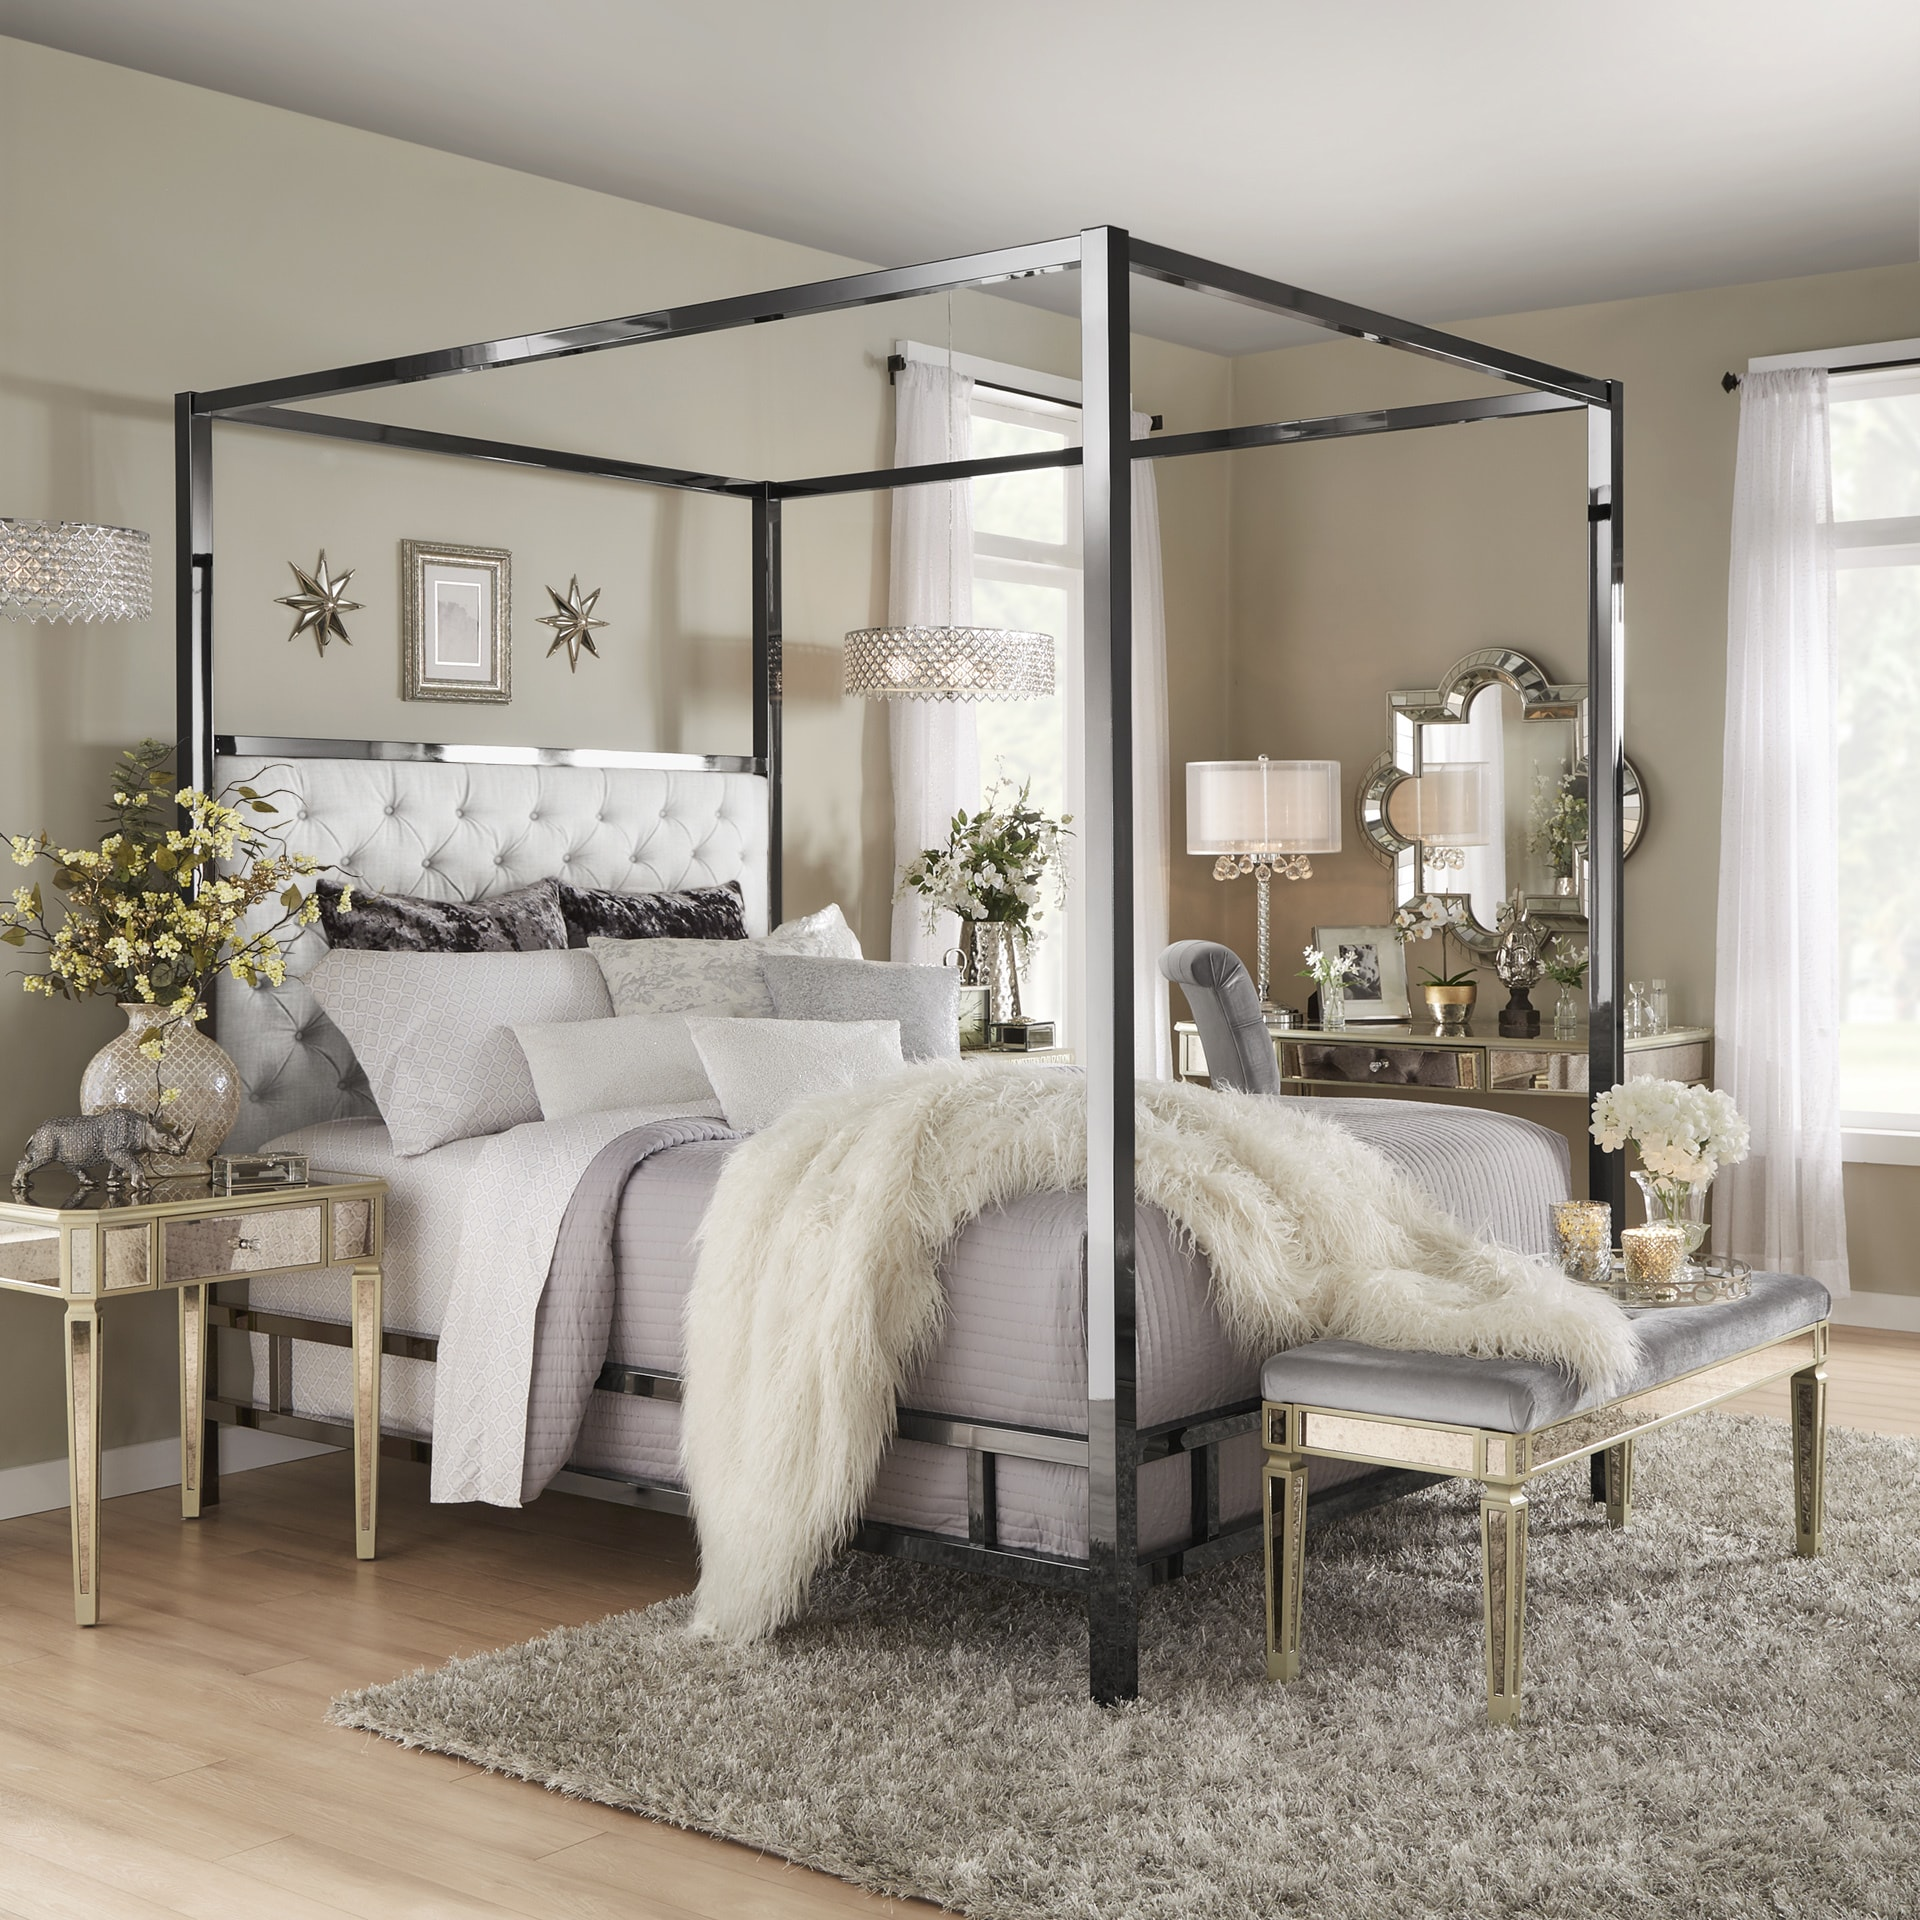 Solivita Black Nickel Metal Canopy Bed with Tufted Headboard by iNSPIRE Q  Bold - Free Shipping Today - Overstock.com - 24873118